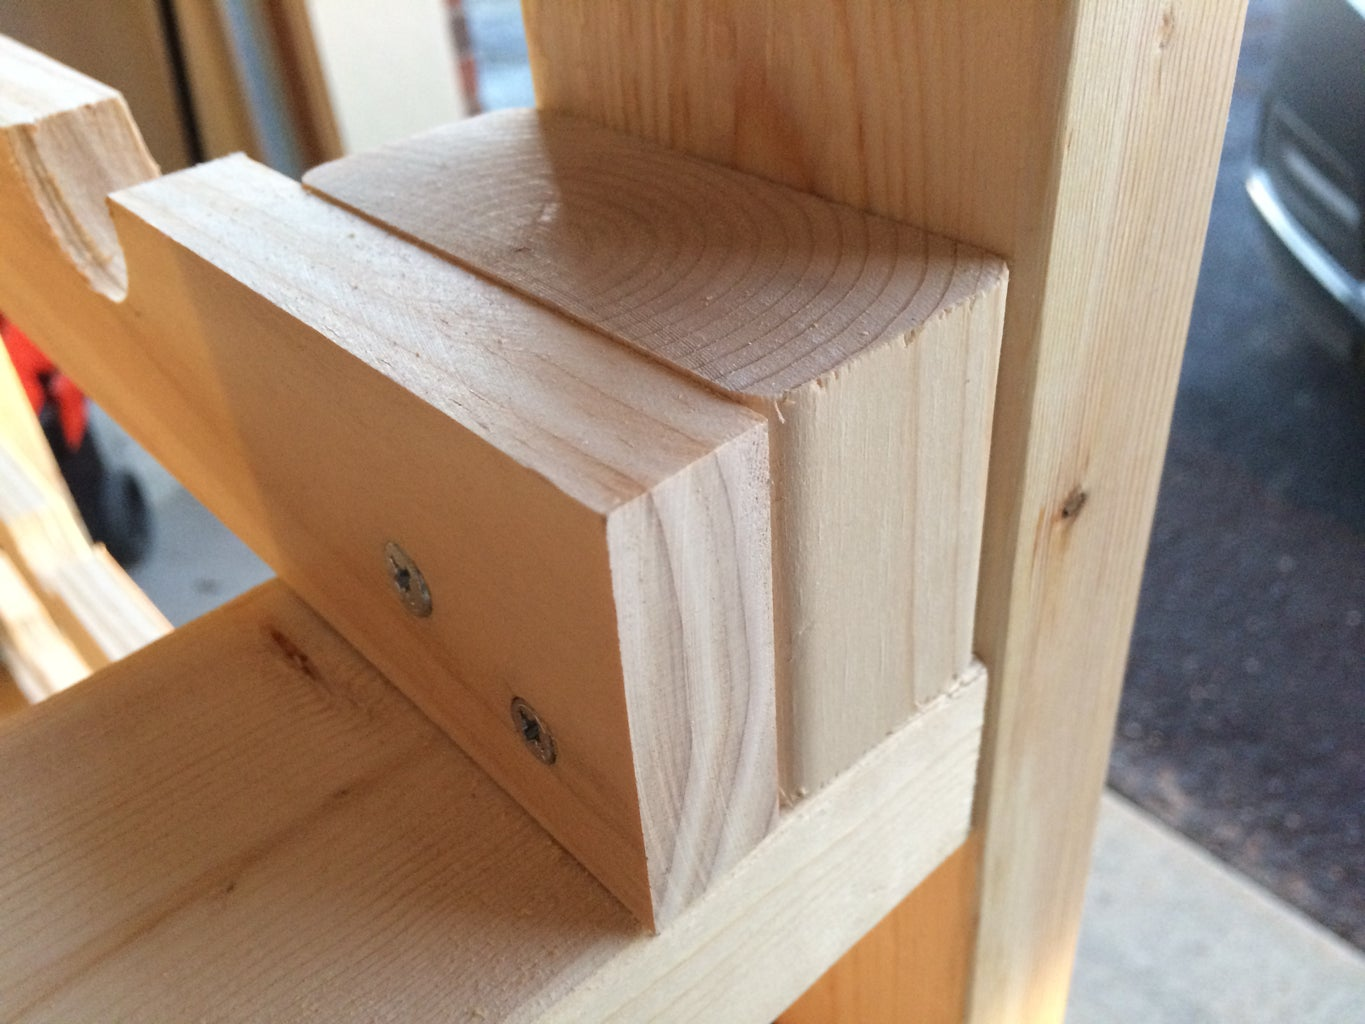 Cut Spacers for the Front Neck Shelves